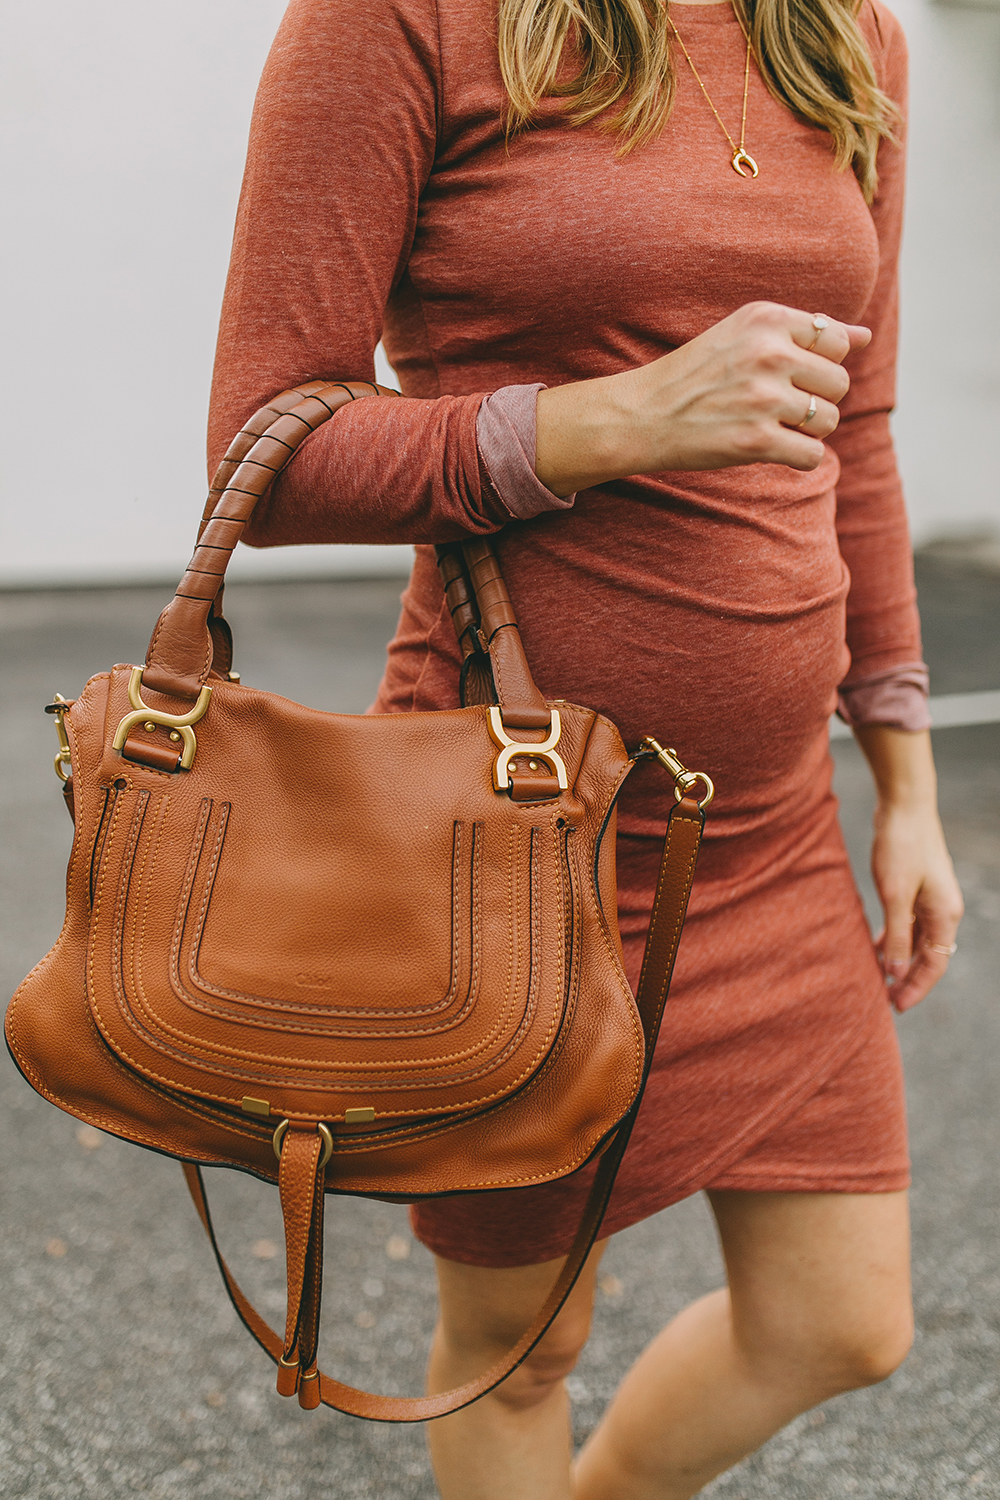 livvyland-blog-olivia-watson-austin-texas-fashion-style-blogger-bohemian-maternity-dress-cute-pregnancy-outfit-idea-chloe-marcie-medium-tan